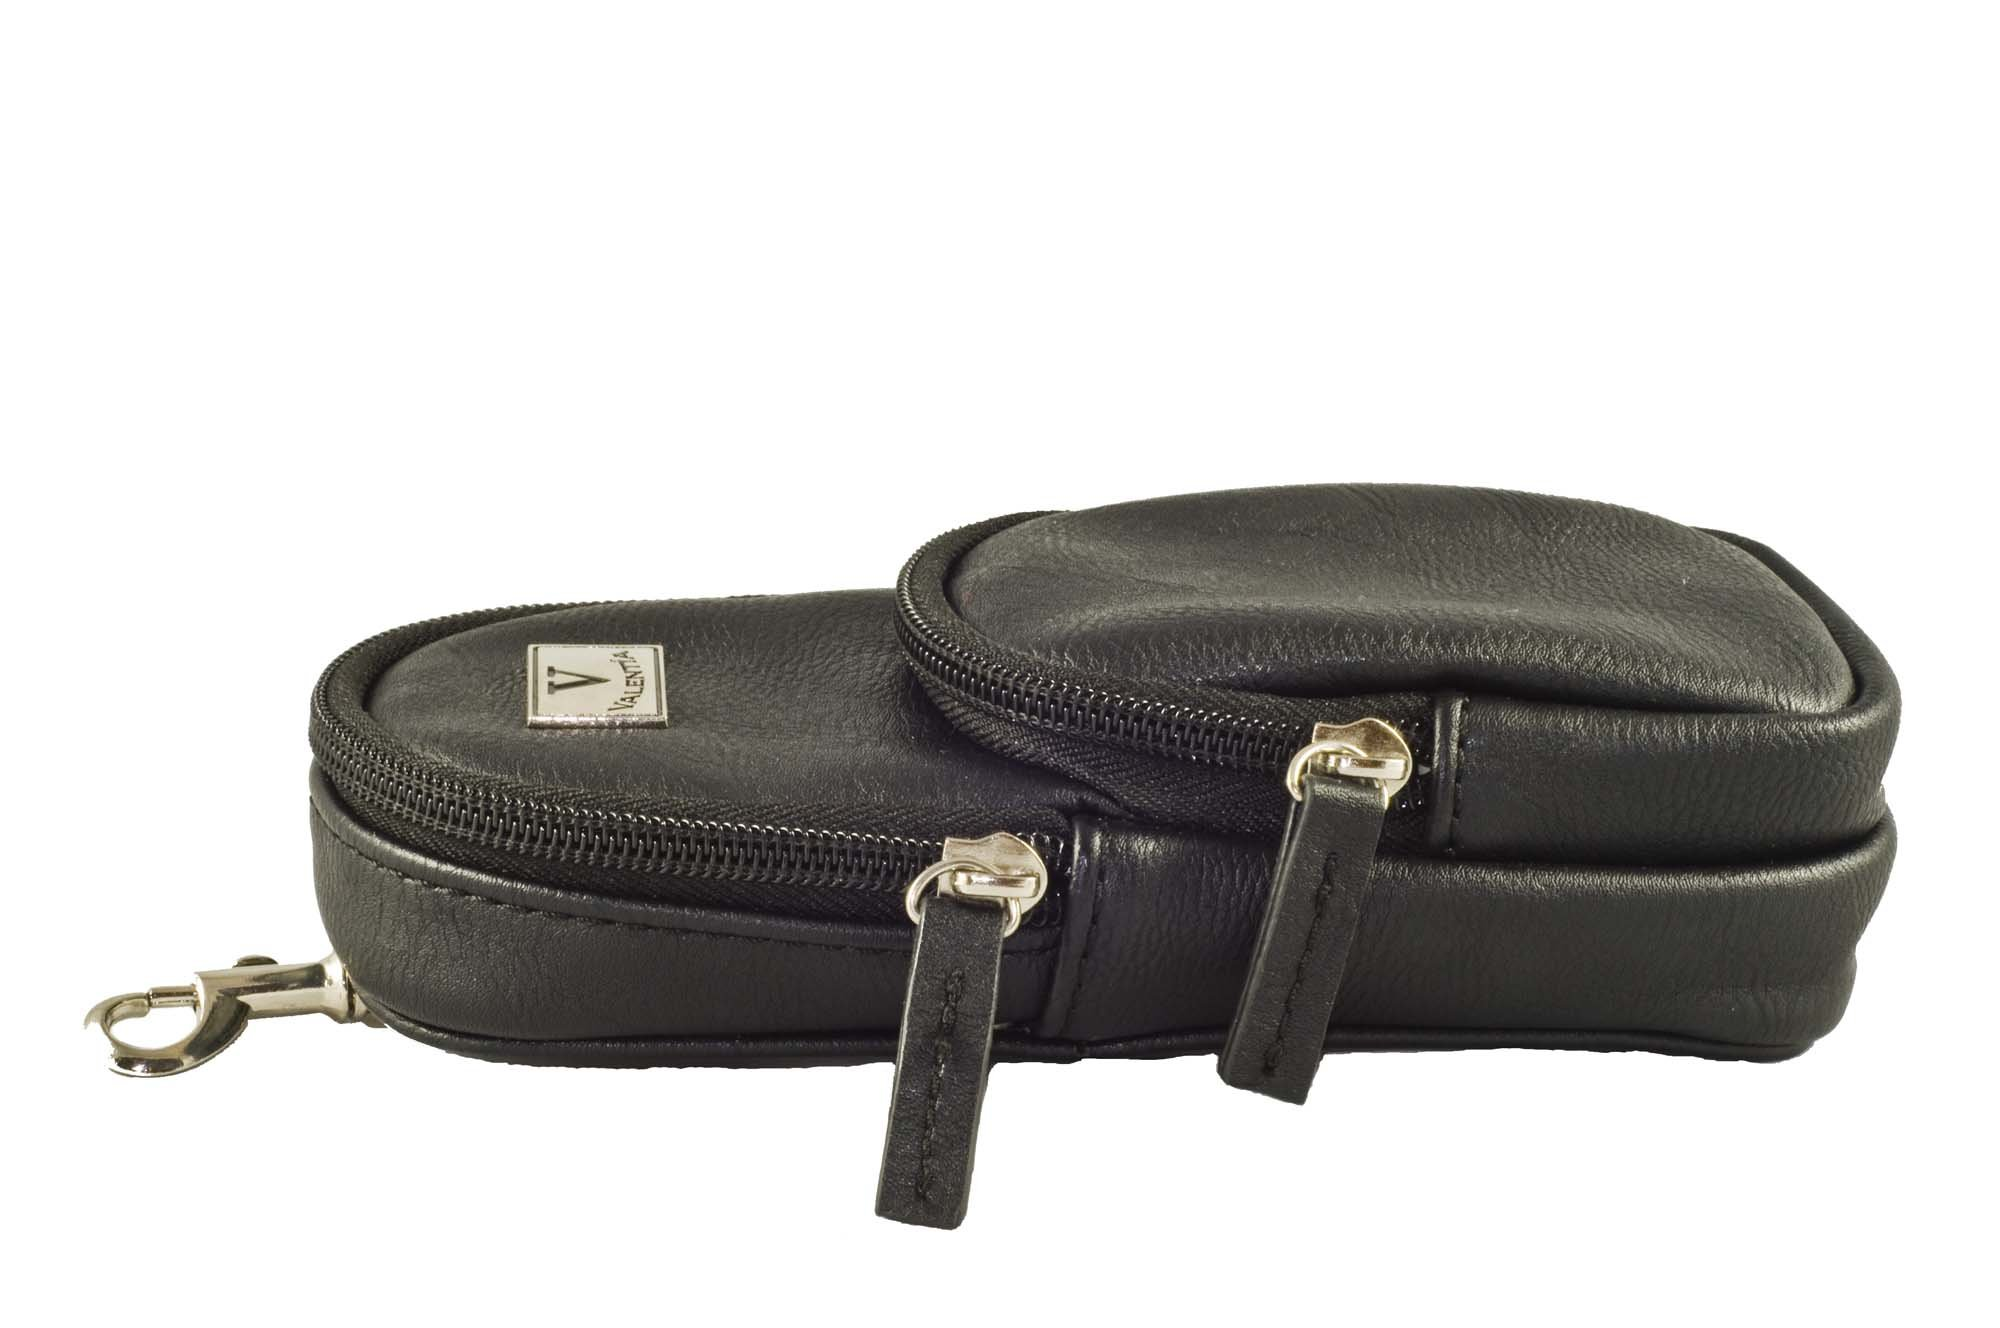 Valentia Cigars Leather Cigar Case, Black